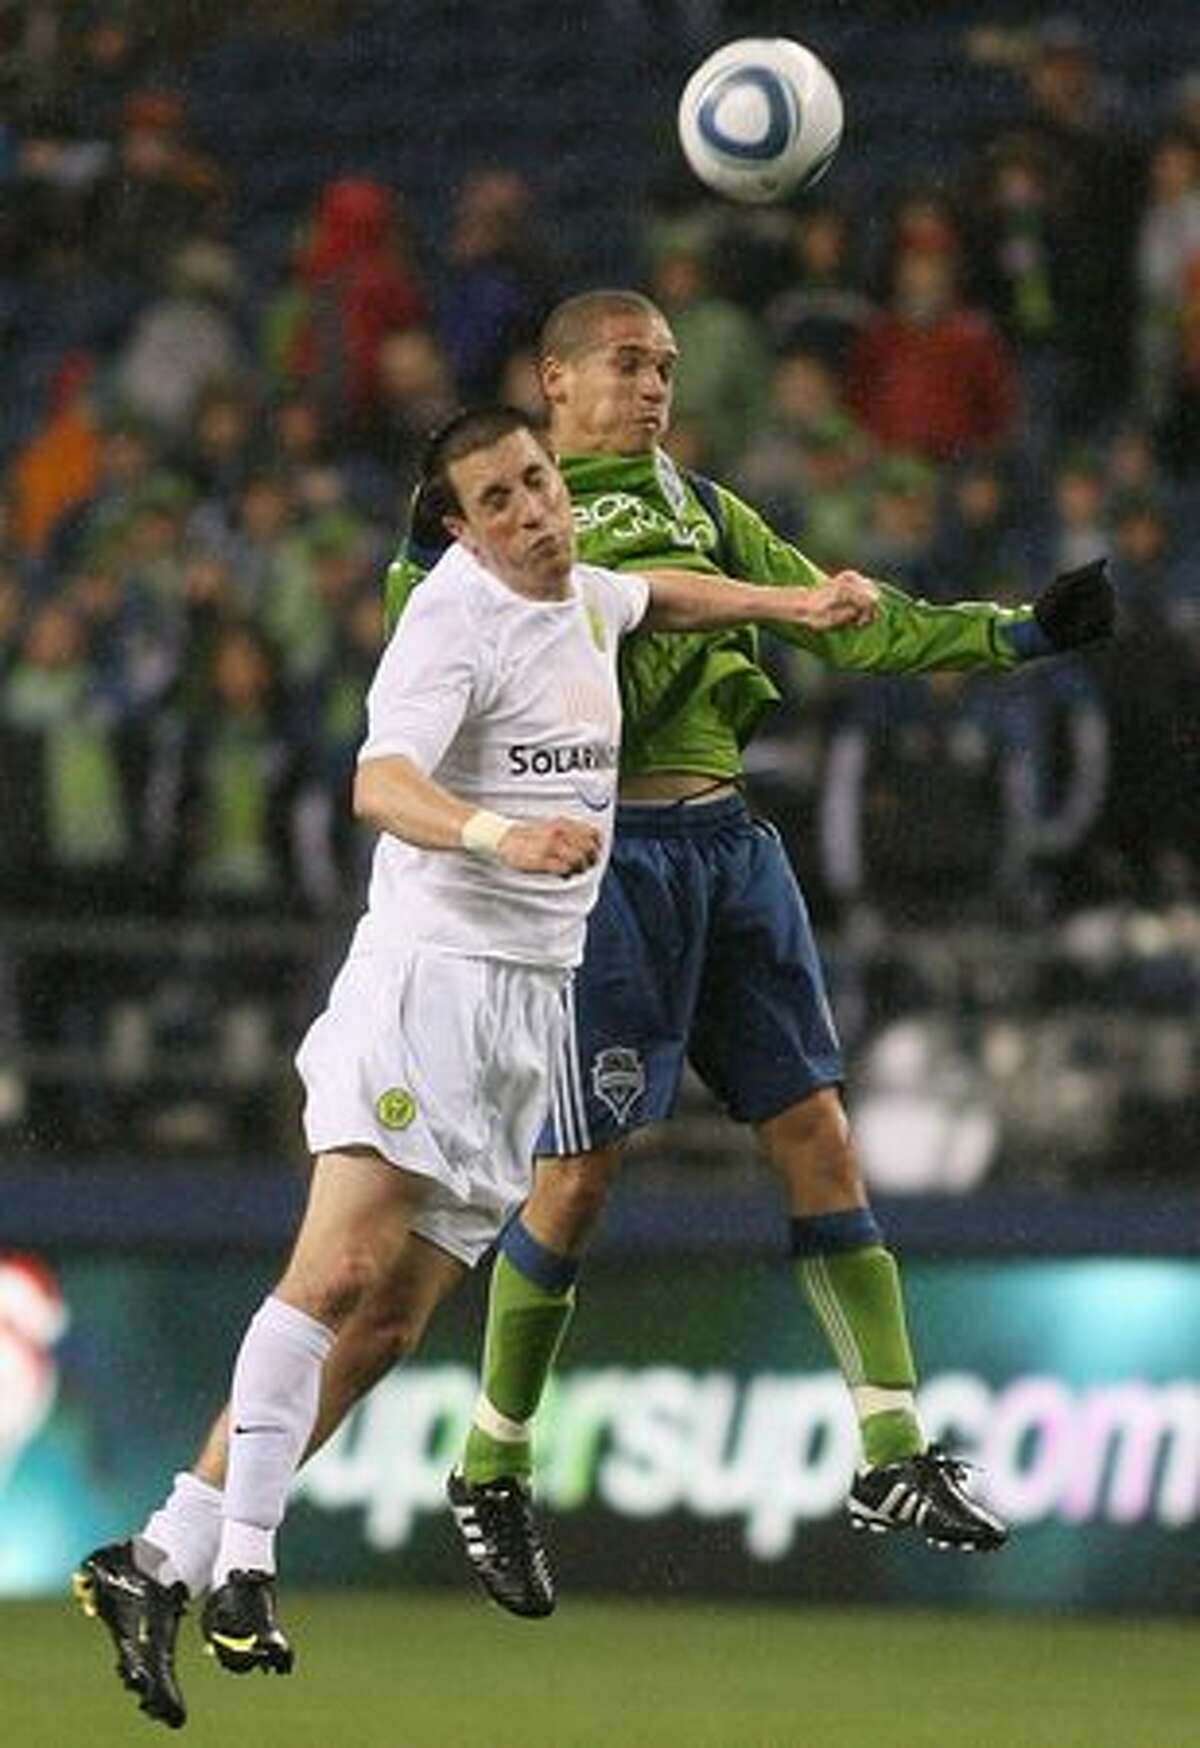 Osvaldo Alonso of the Seattle Sounders goes up for a header against Ryan Pore of the Portland Timbers in the second half of a preseason match on March 11, 2010 at Qwest Field in Seattle.